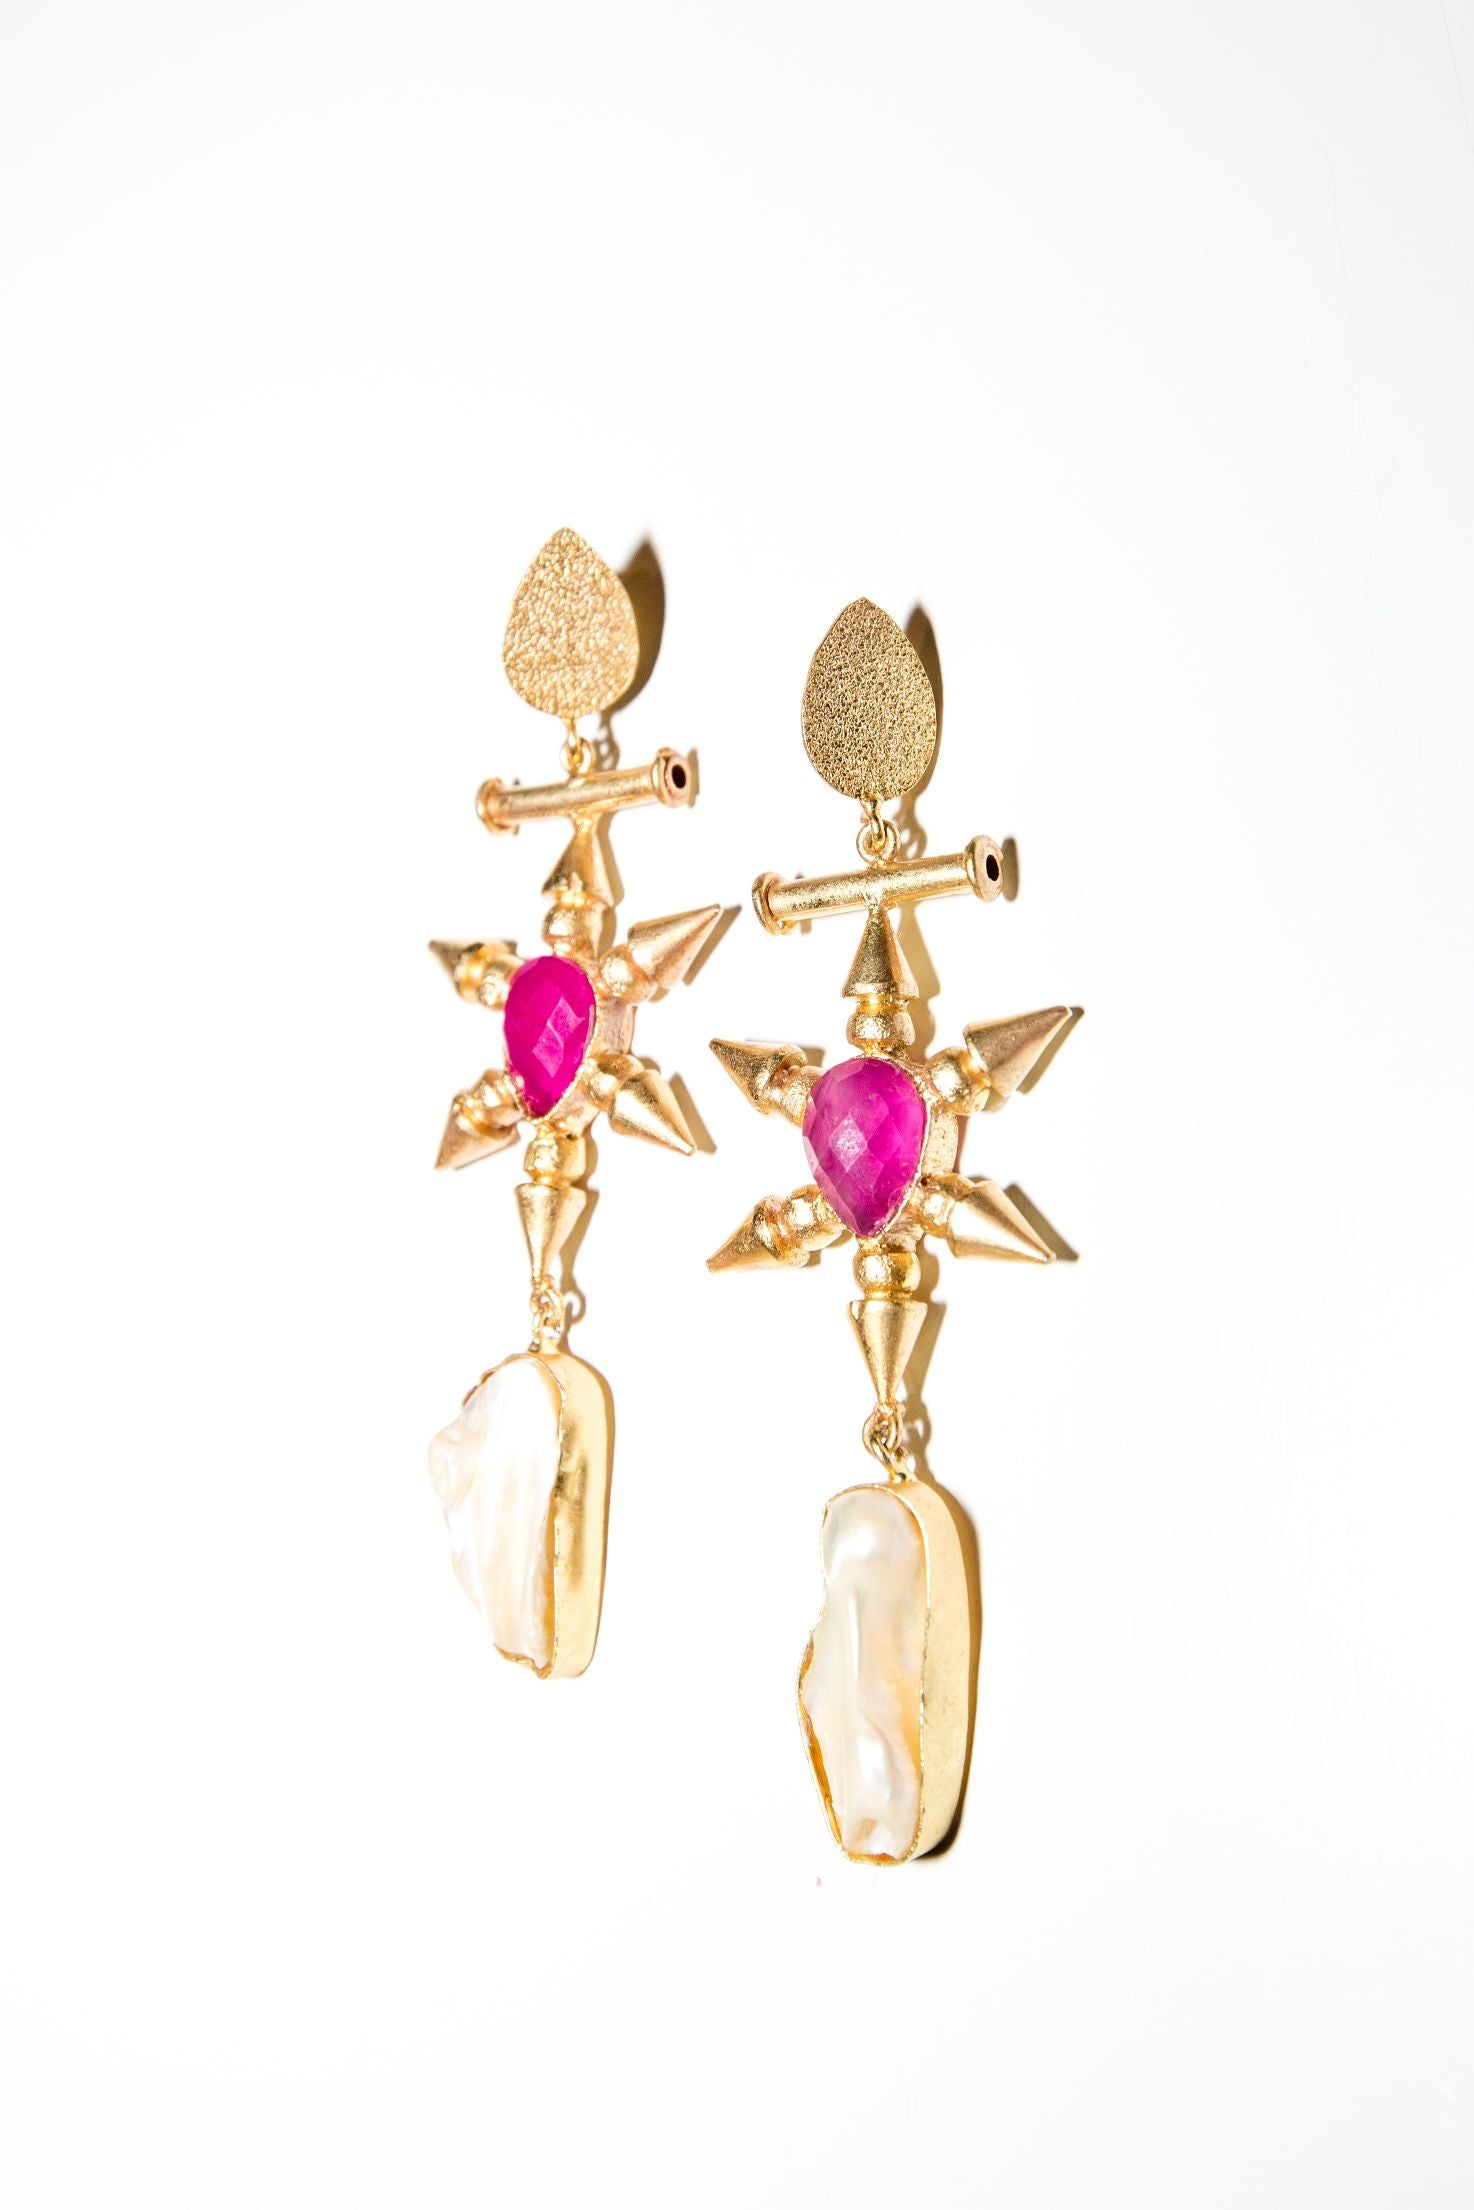 Golden Throne Earring - Pink Onyx & Mother of Pearl